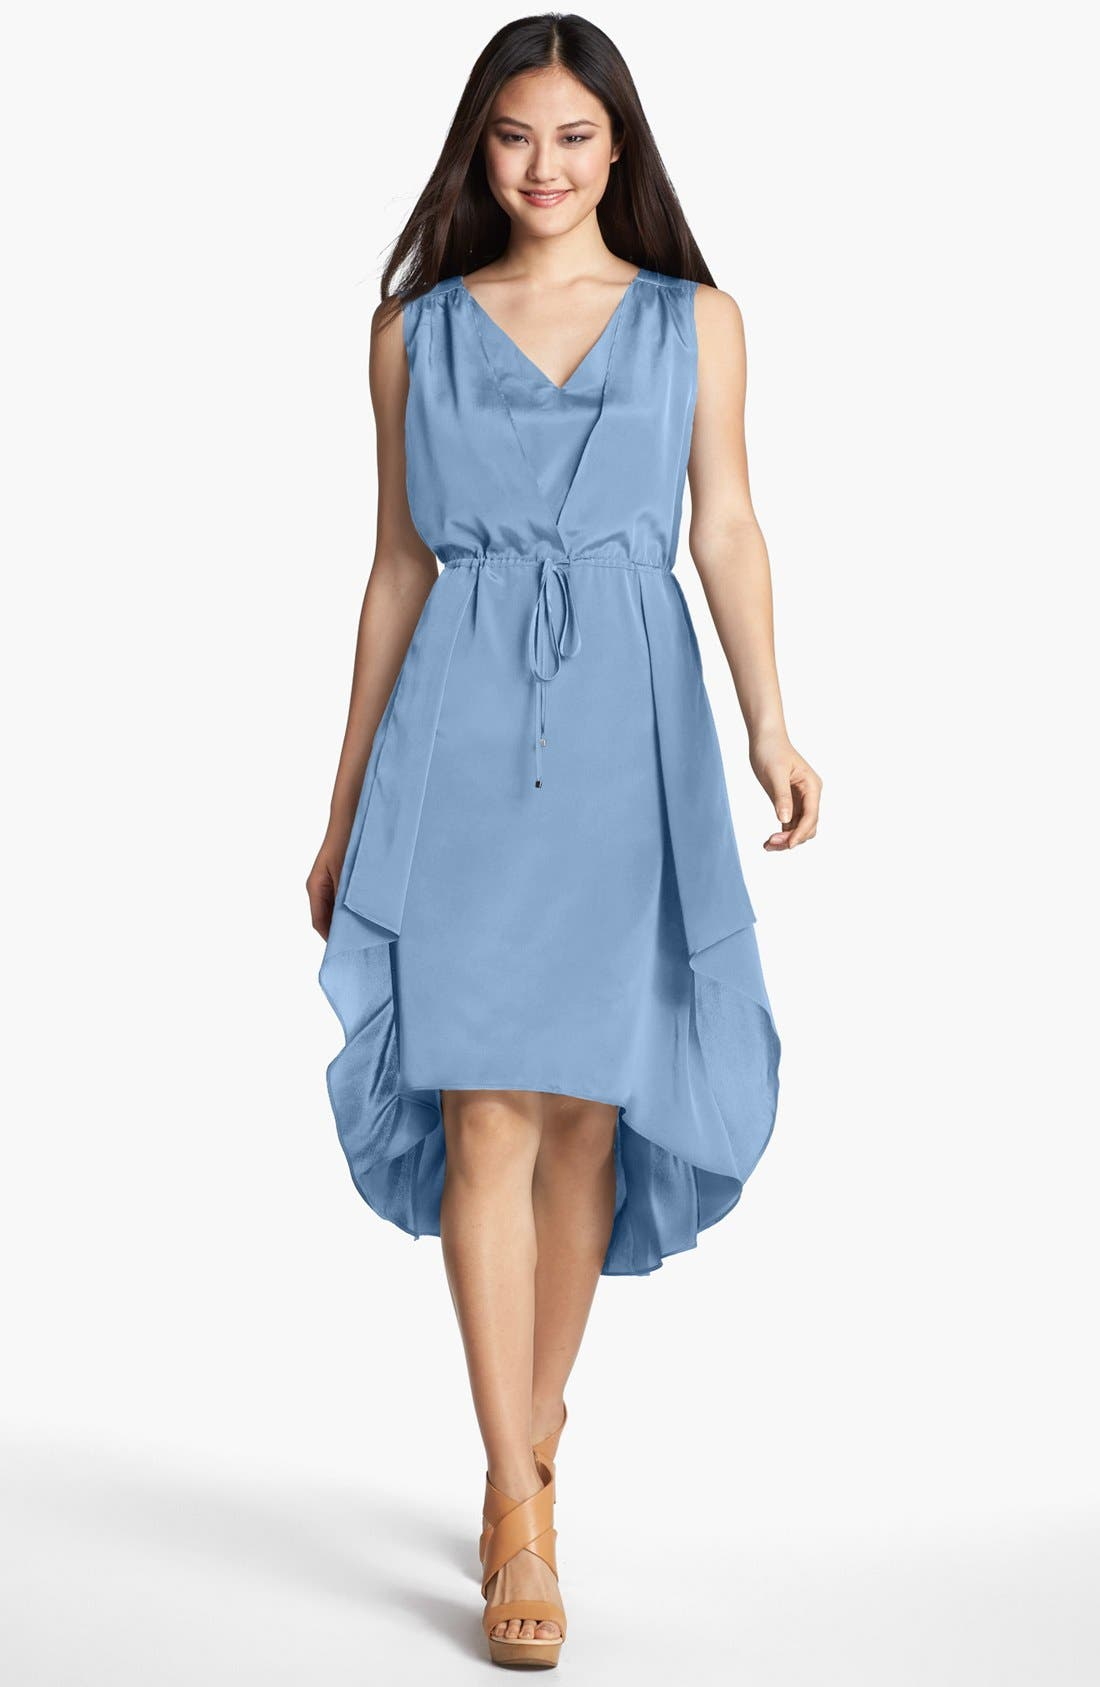 Main Image - Kenneth Cole New York 'Gracey' Sleeveless Dress